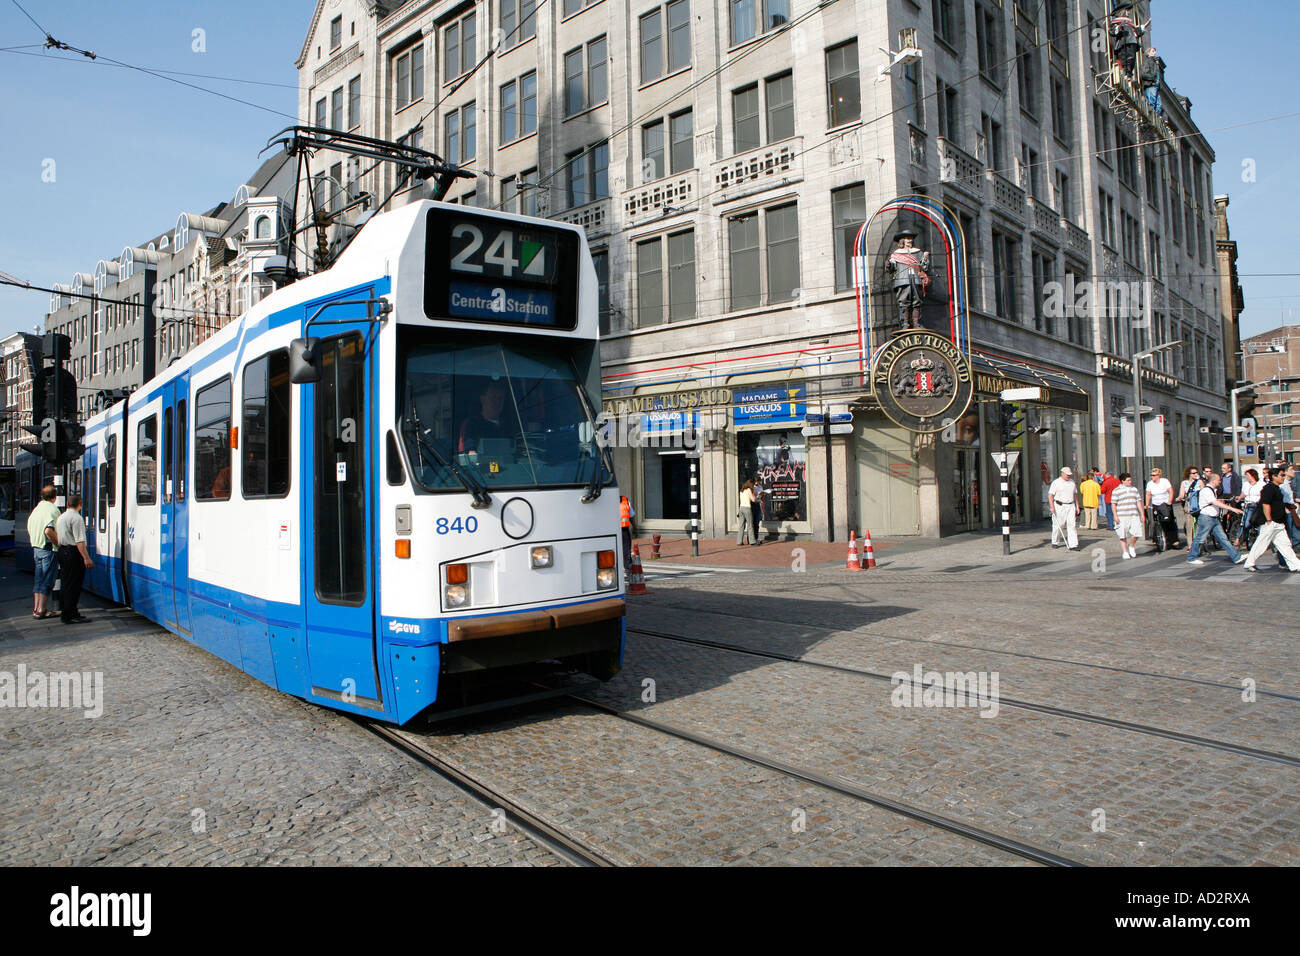 Madame Tussaud museum on Dam Square in Amsterdam, and a typical Dutch tram. - Stock Image